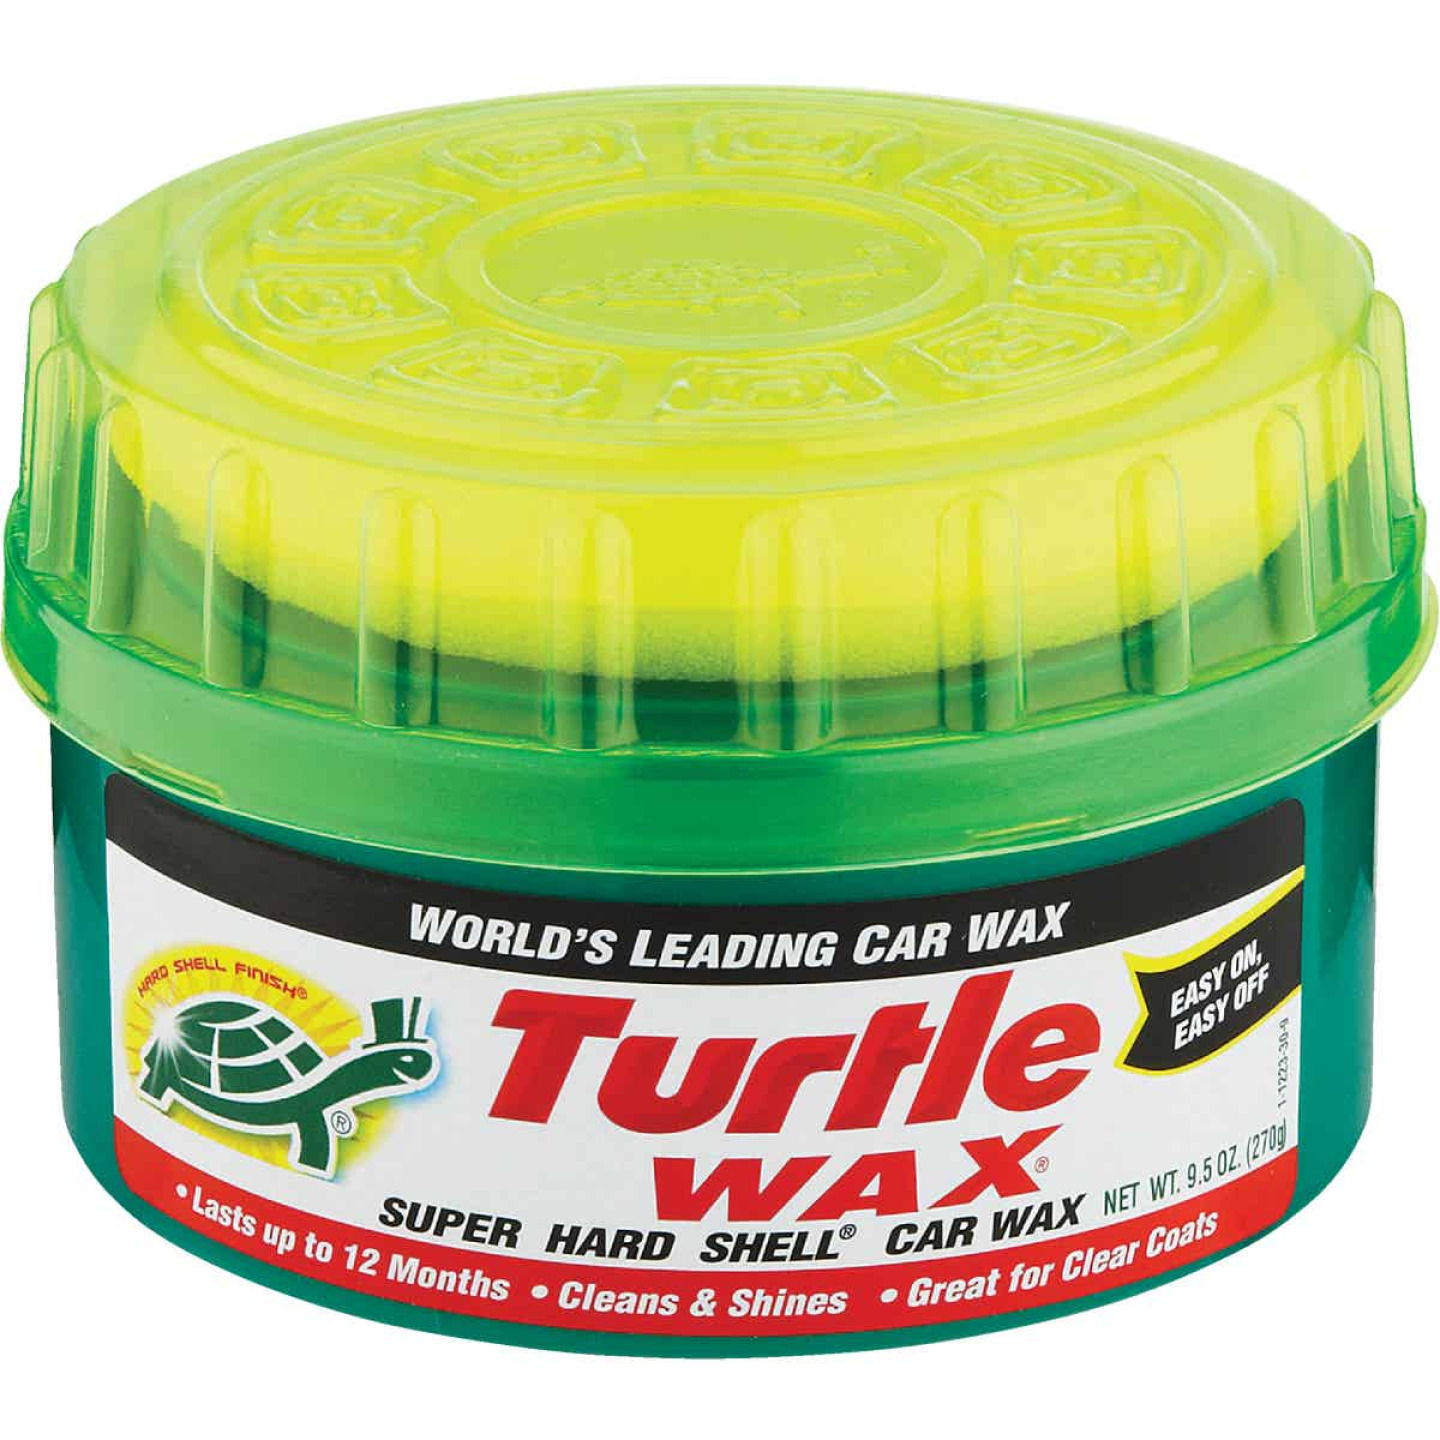 Turtle Wax Super Hard Shell Paste 9.5 Oz. Car Wax Image 1